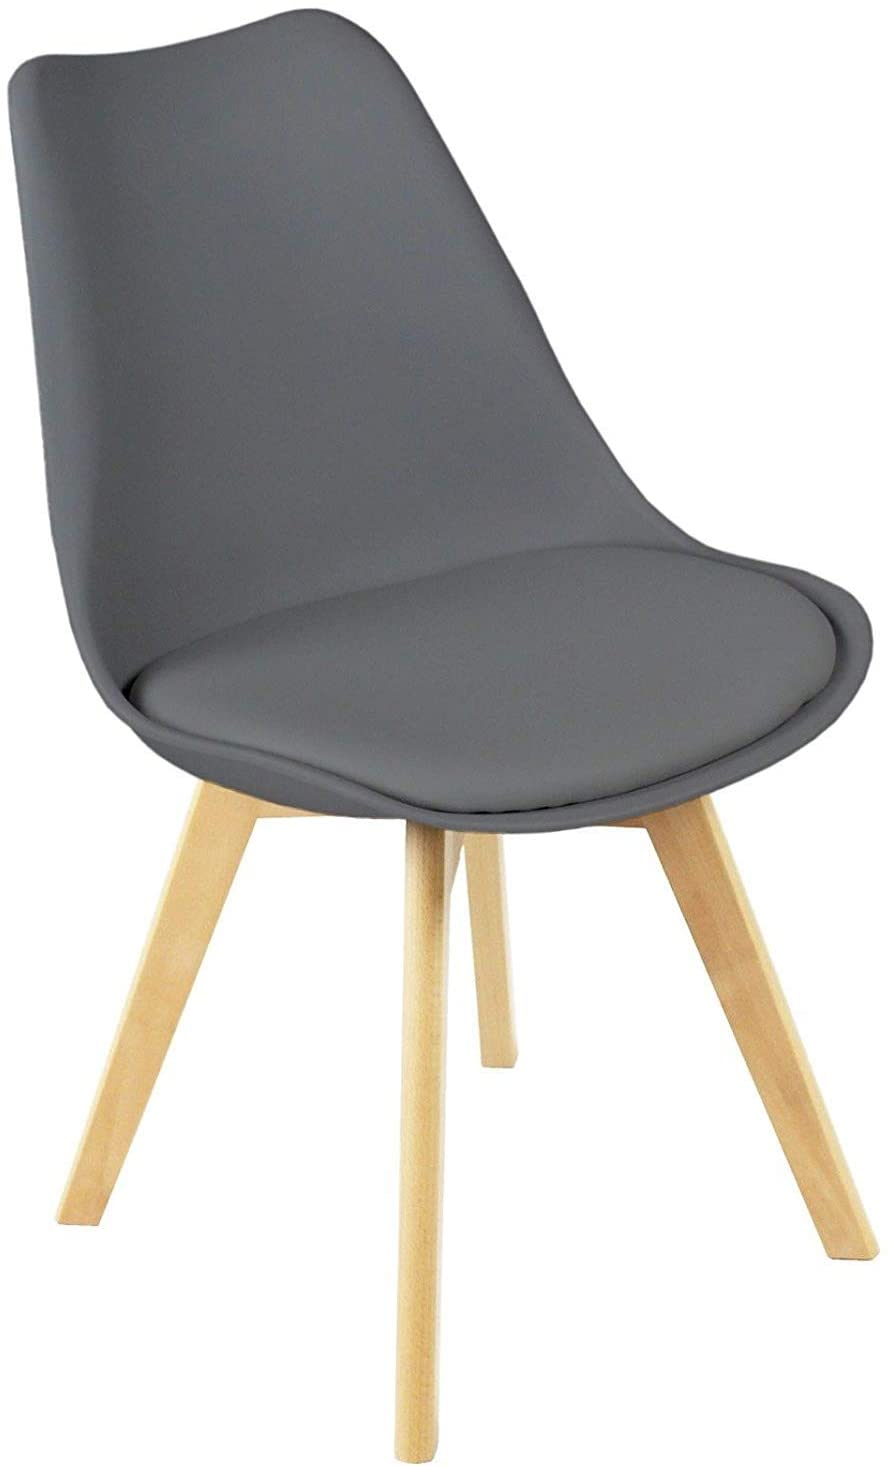 Charles Jacobs 2 x Modern Dining Chairs With Solid Beech Legs - Grey